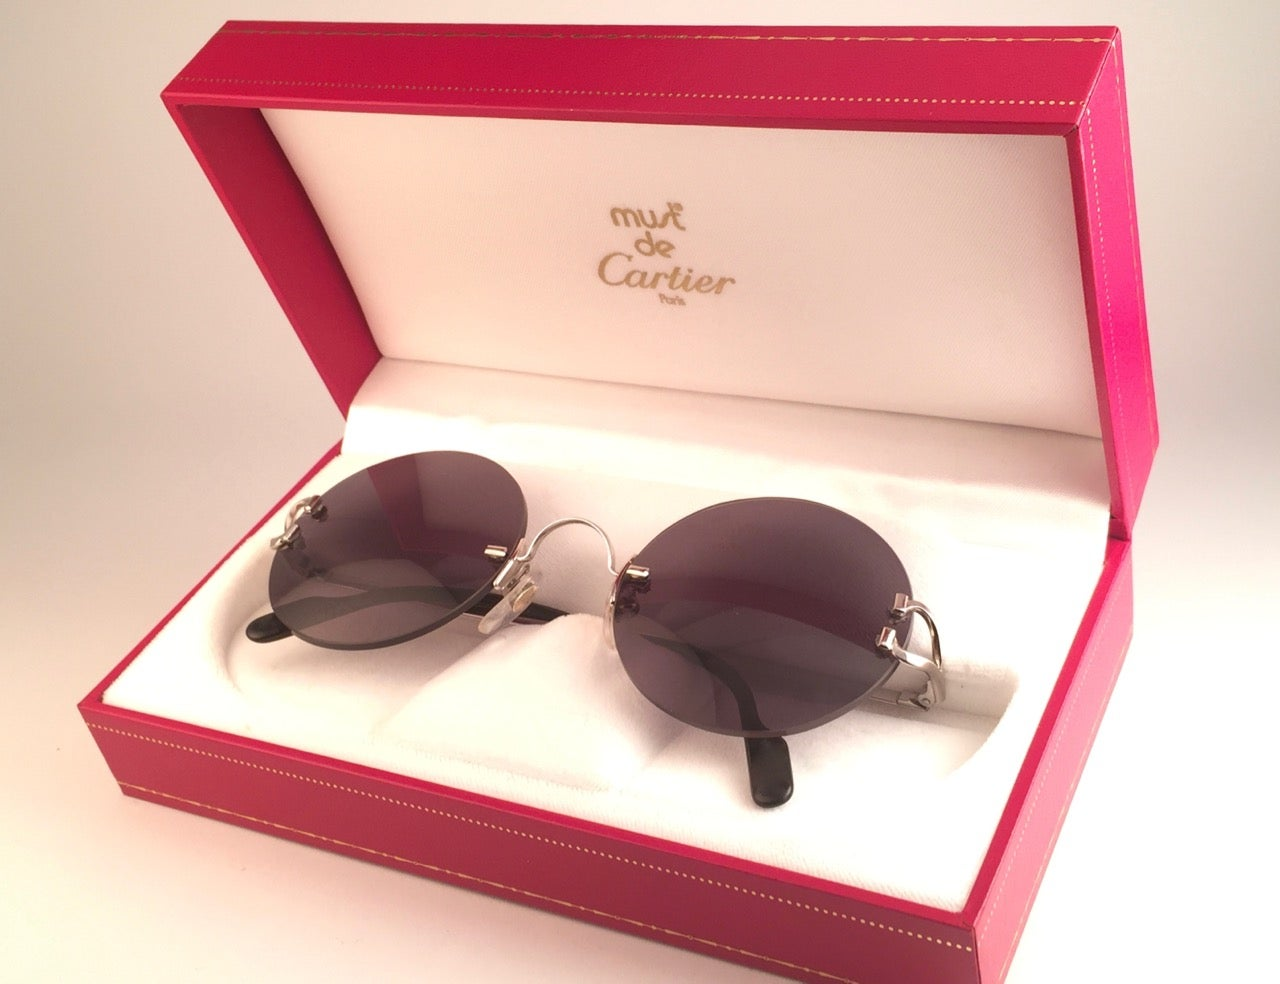 297c948ad77 New Cartier Madison Round Rimless Platine 50mm Grey Lenses France Sunglasses  at 1stdibs